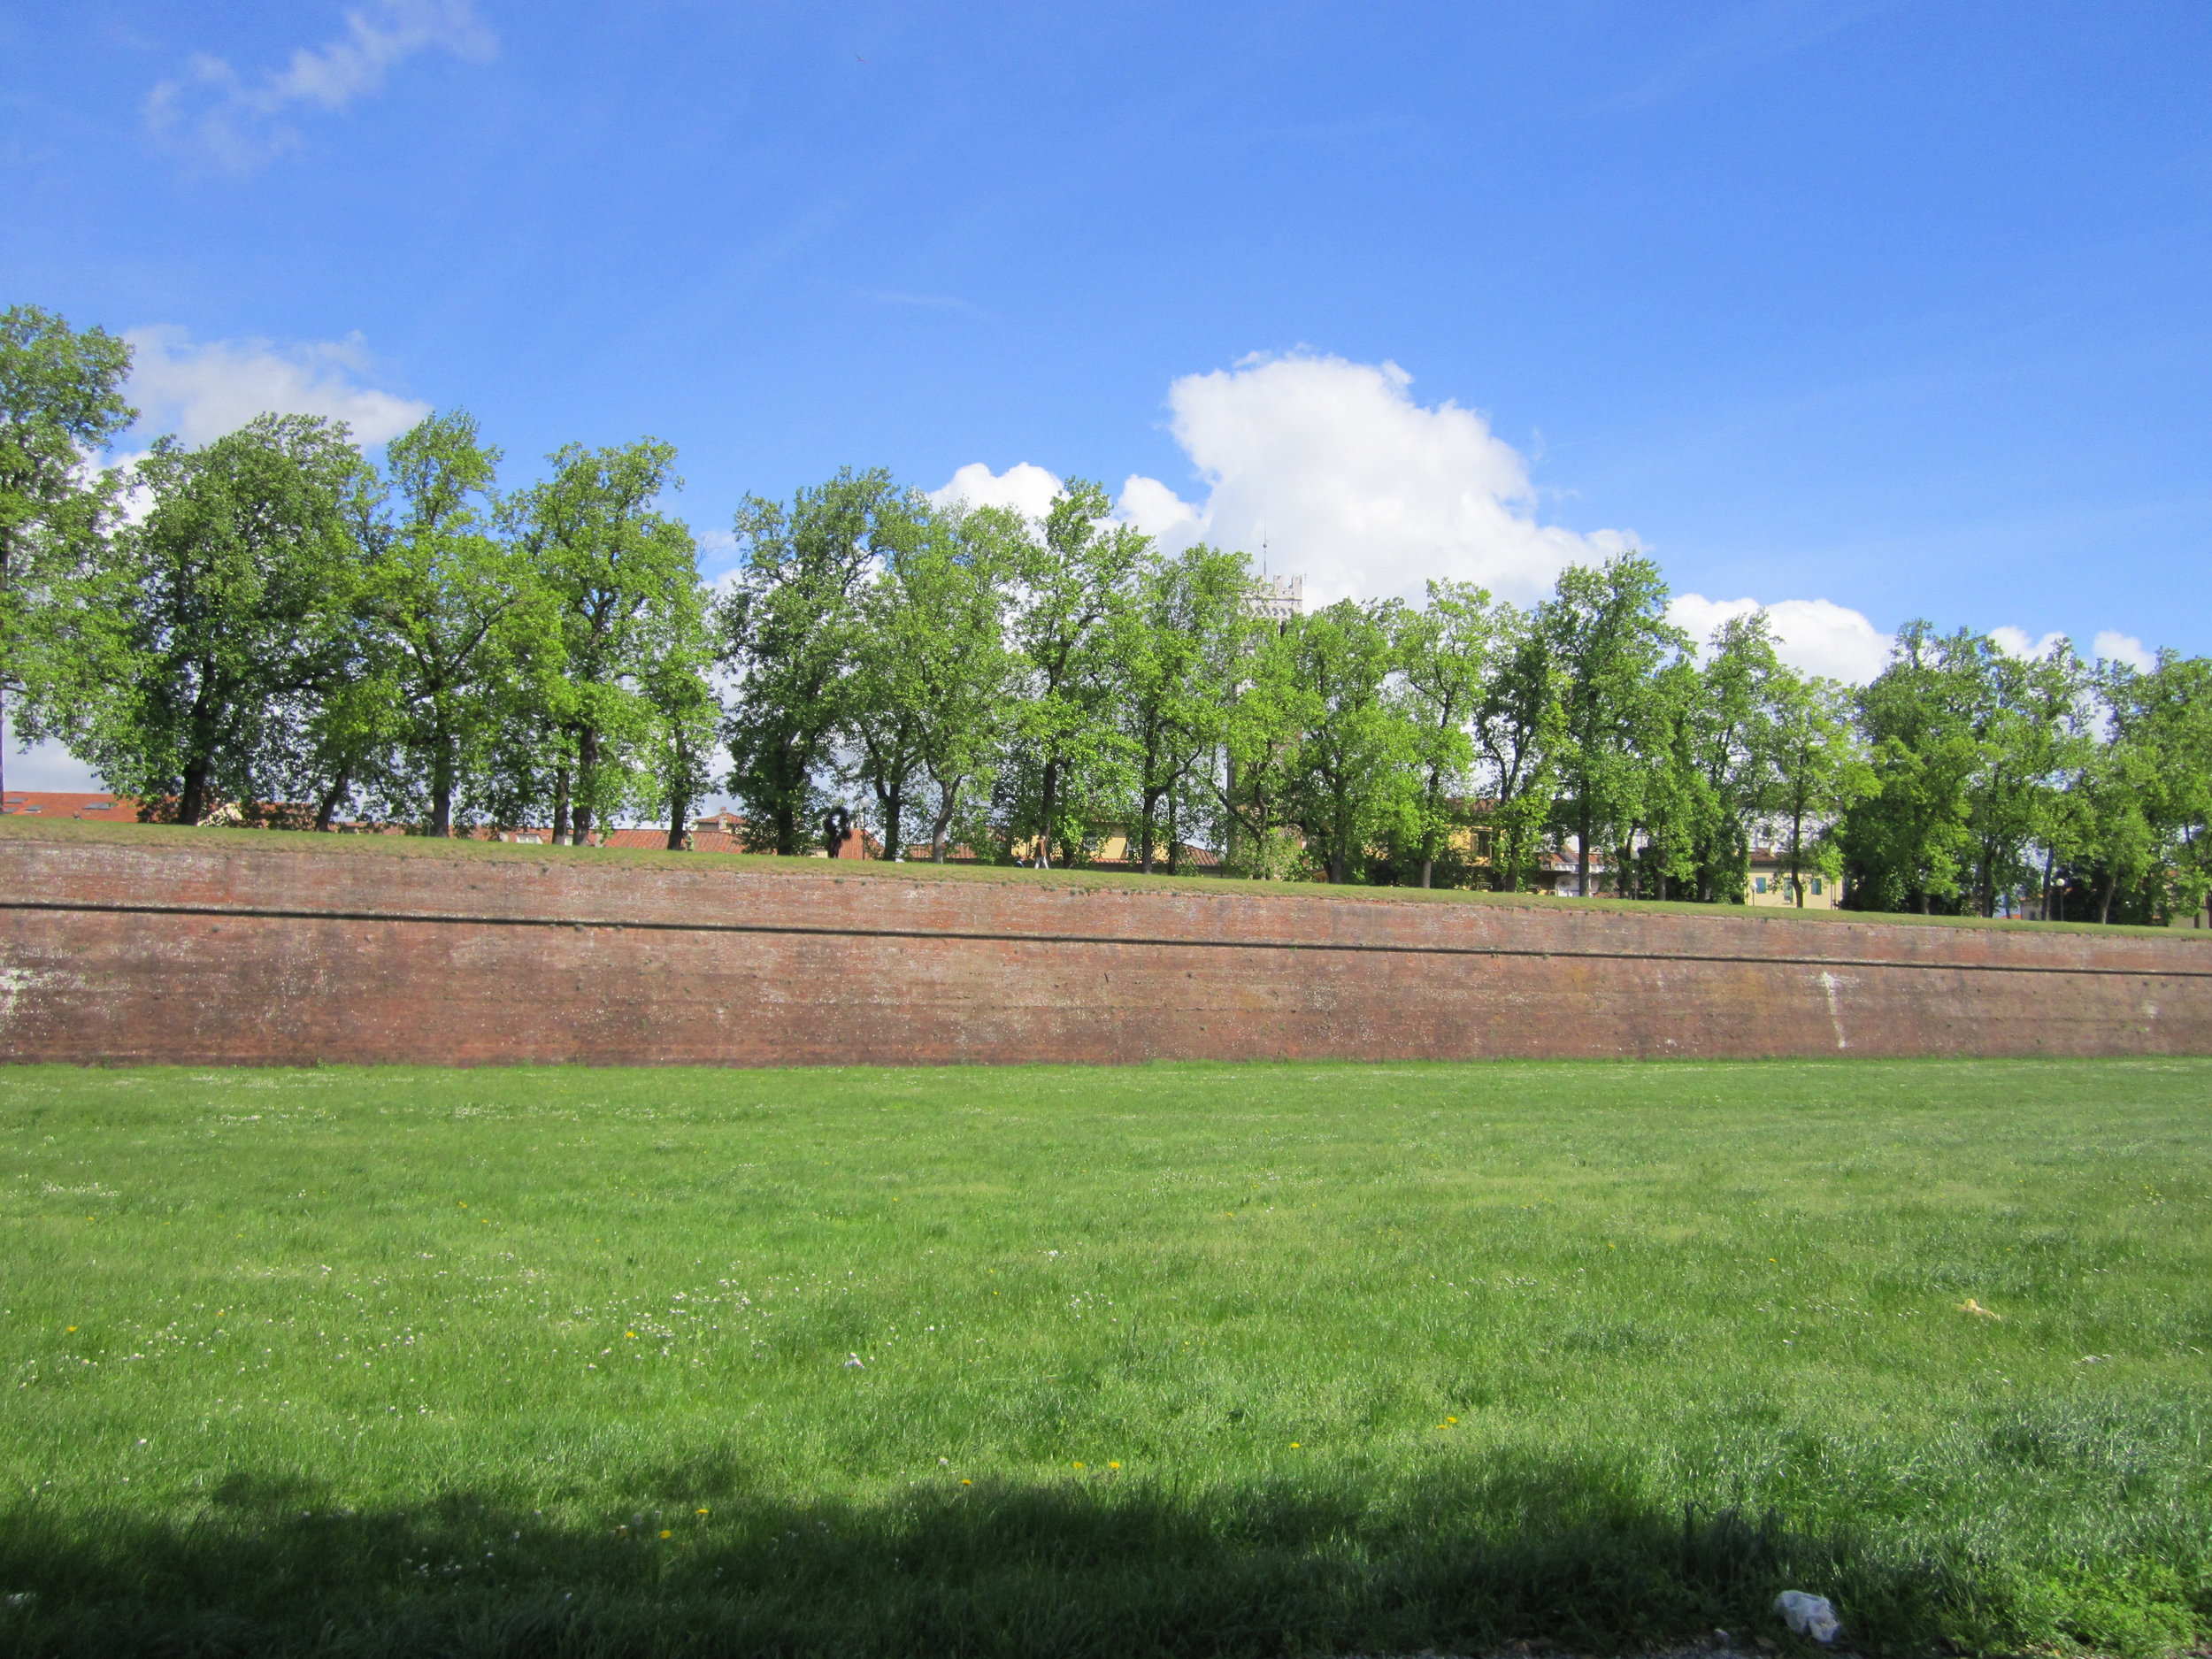 The wall that surrounds Lucca.